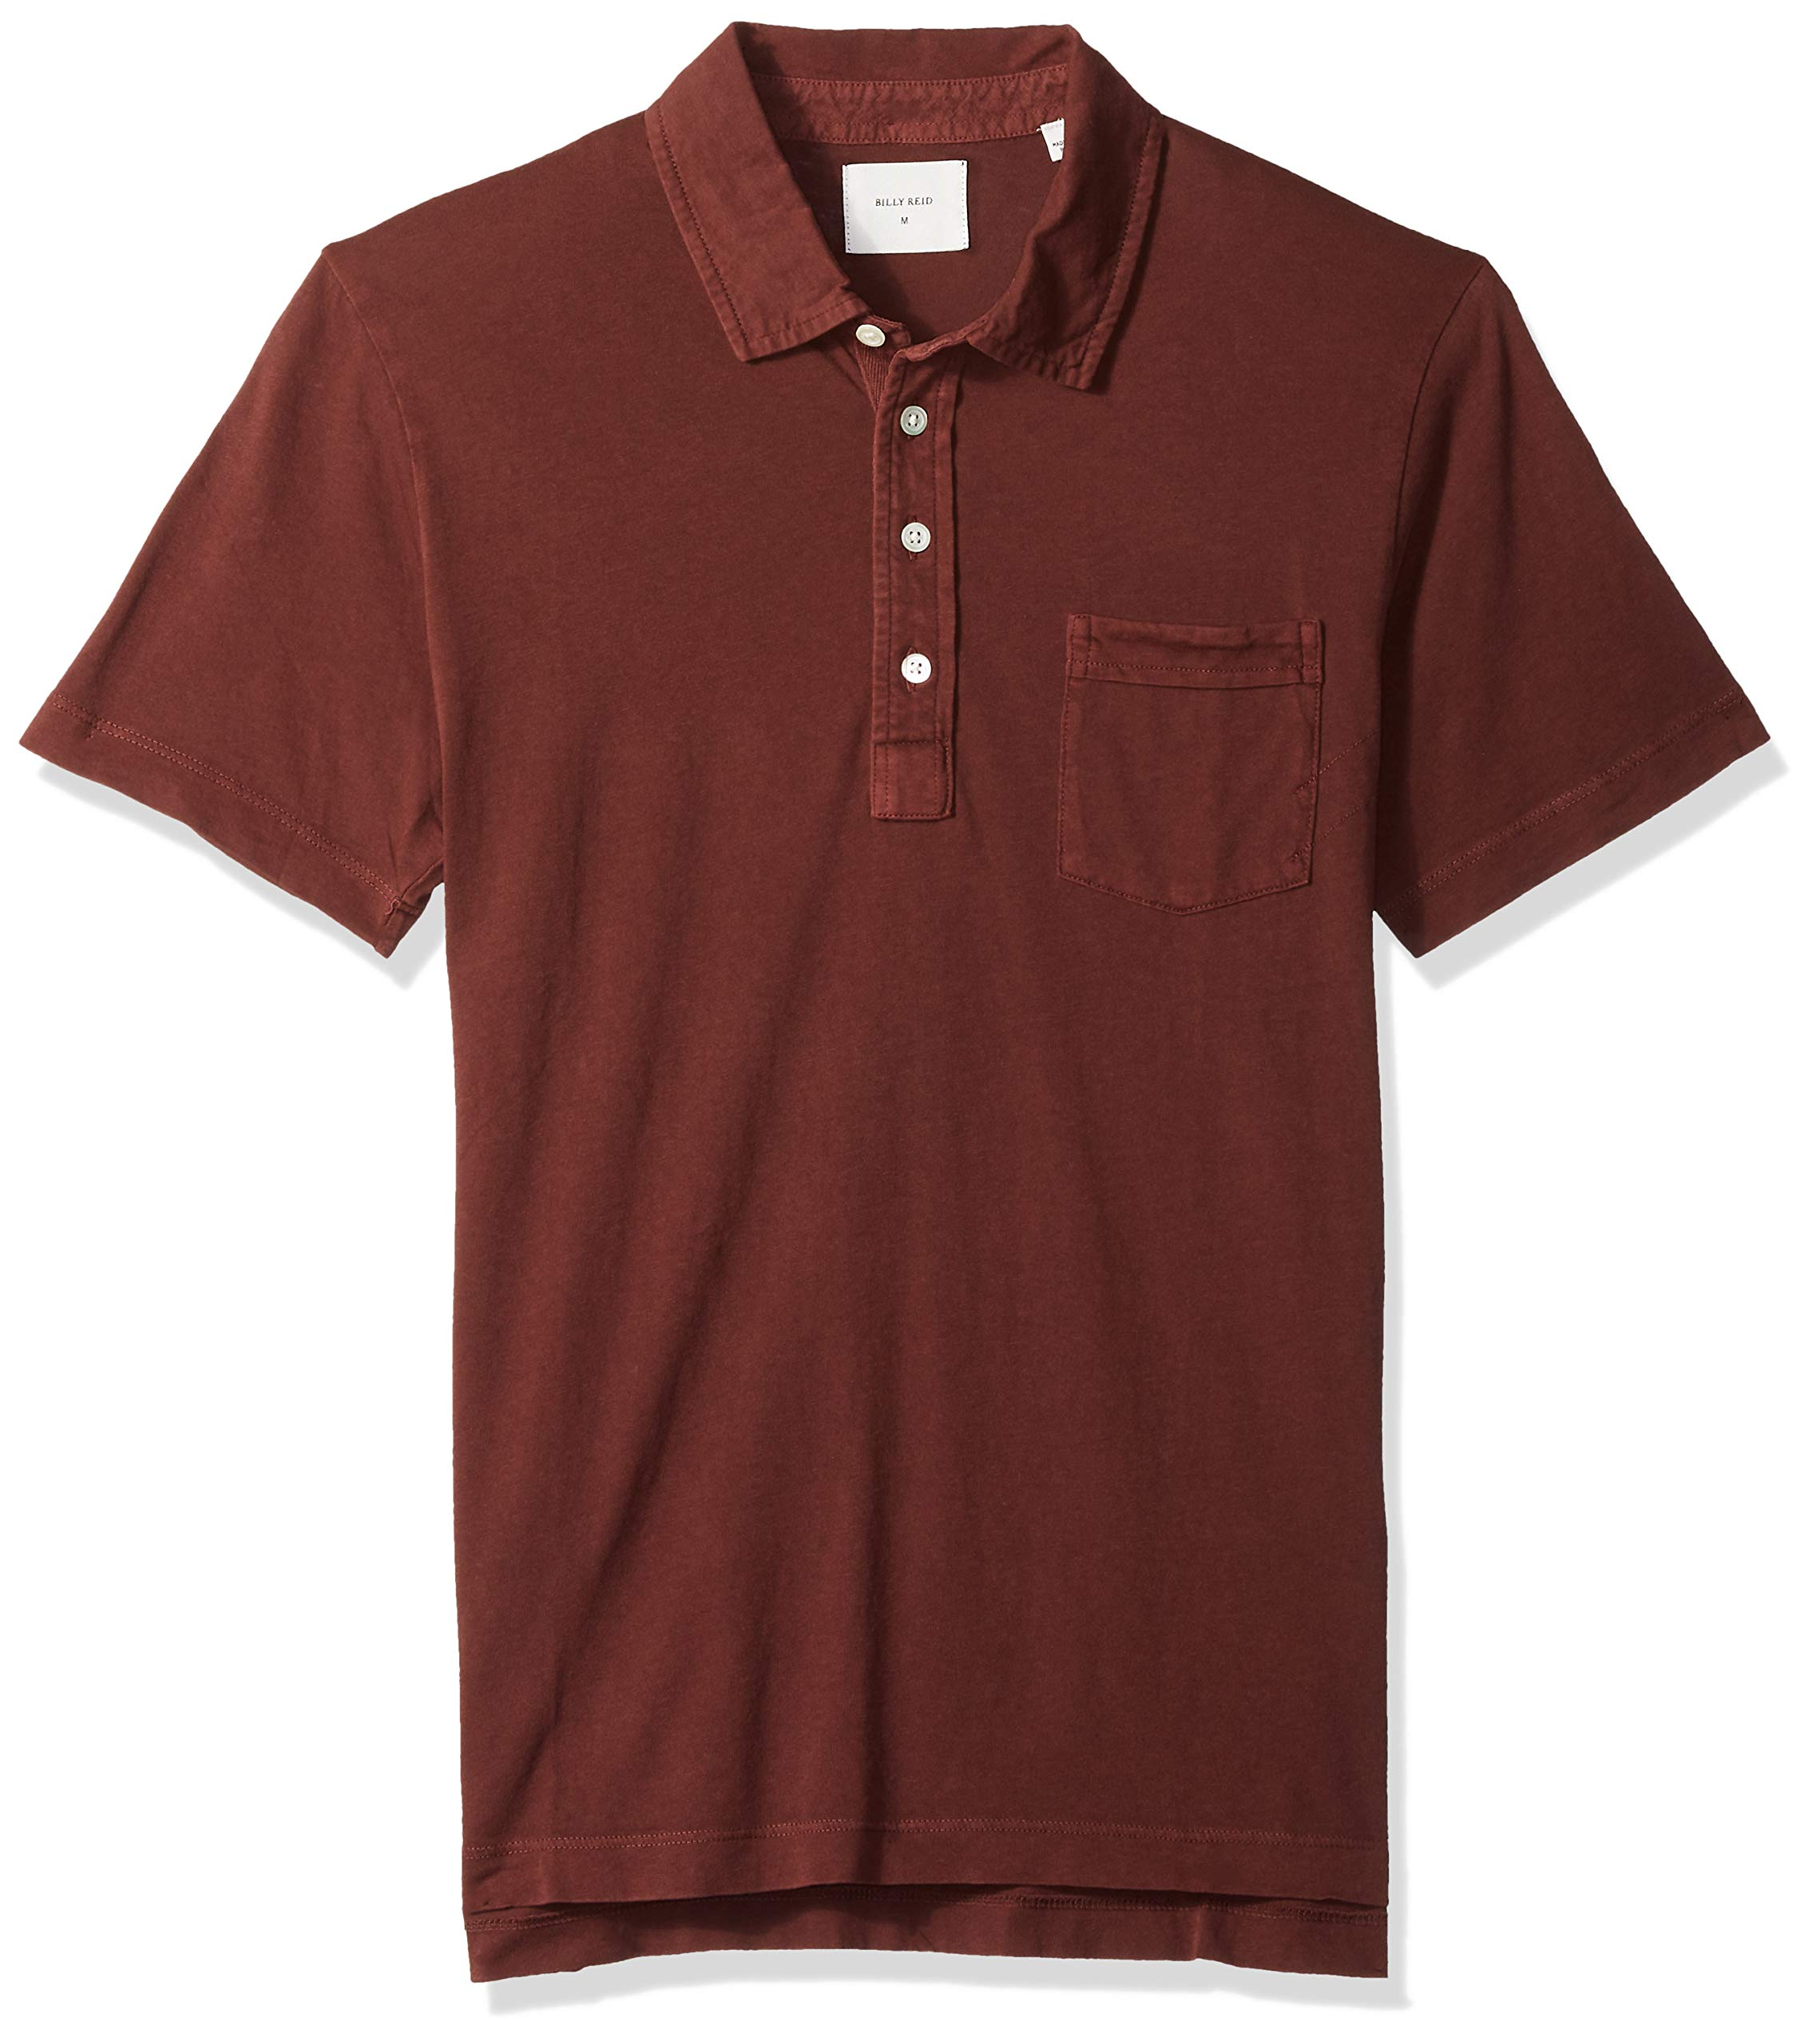 Billy Reid Men's Short Sleeve Pensacola Polo Shirt with Pocket, g/dye burgundy, M